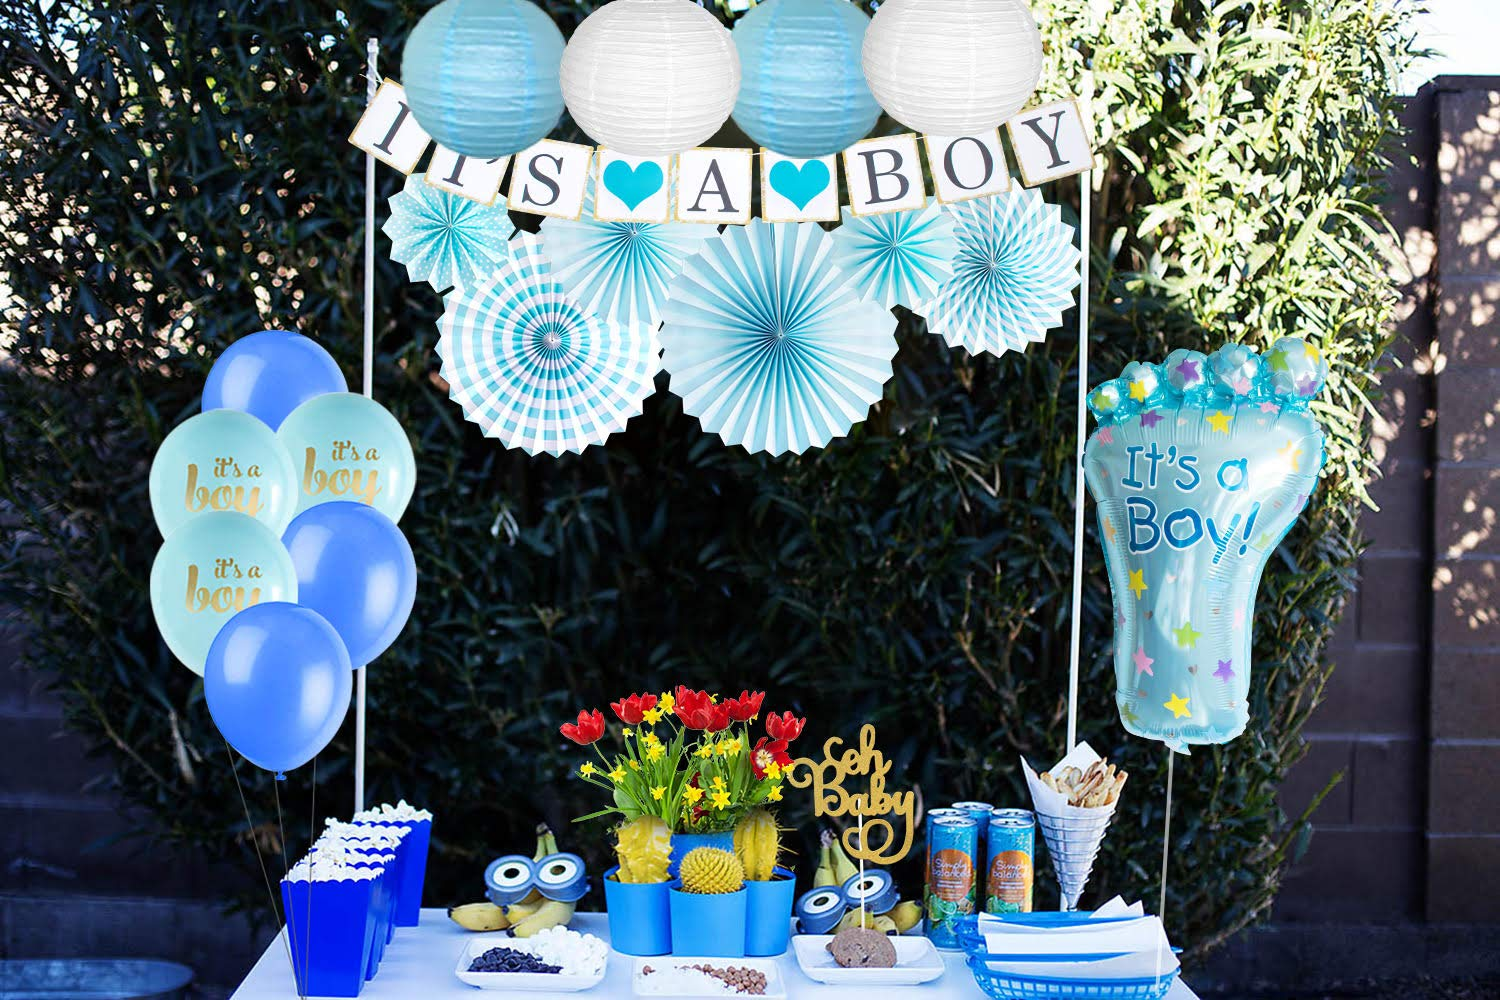 Baby Shower Decorations for Boy I BabyShower Backdrop Decor I Boy Baby Shower Decorations I Premium Party Decoration Items I Its a Boy Banner Star Swirls Foot-shaped Foil Balloon Lanterns, Cake Topper by Moment-O-Mania (Image #3)